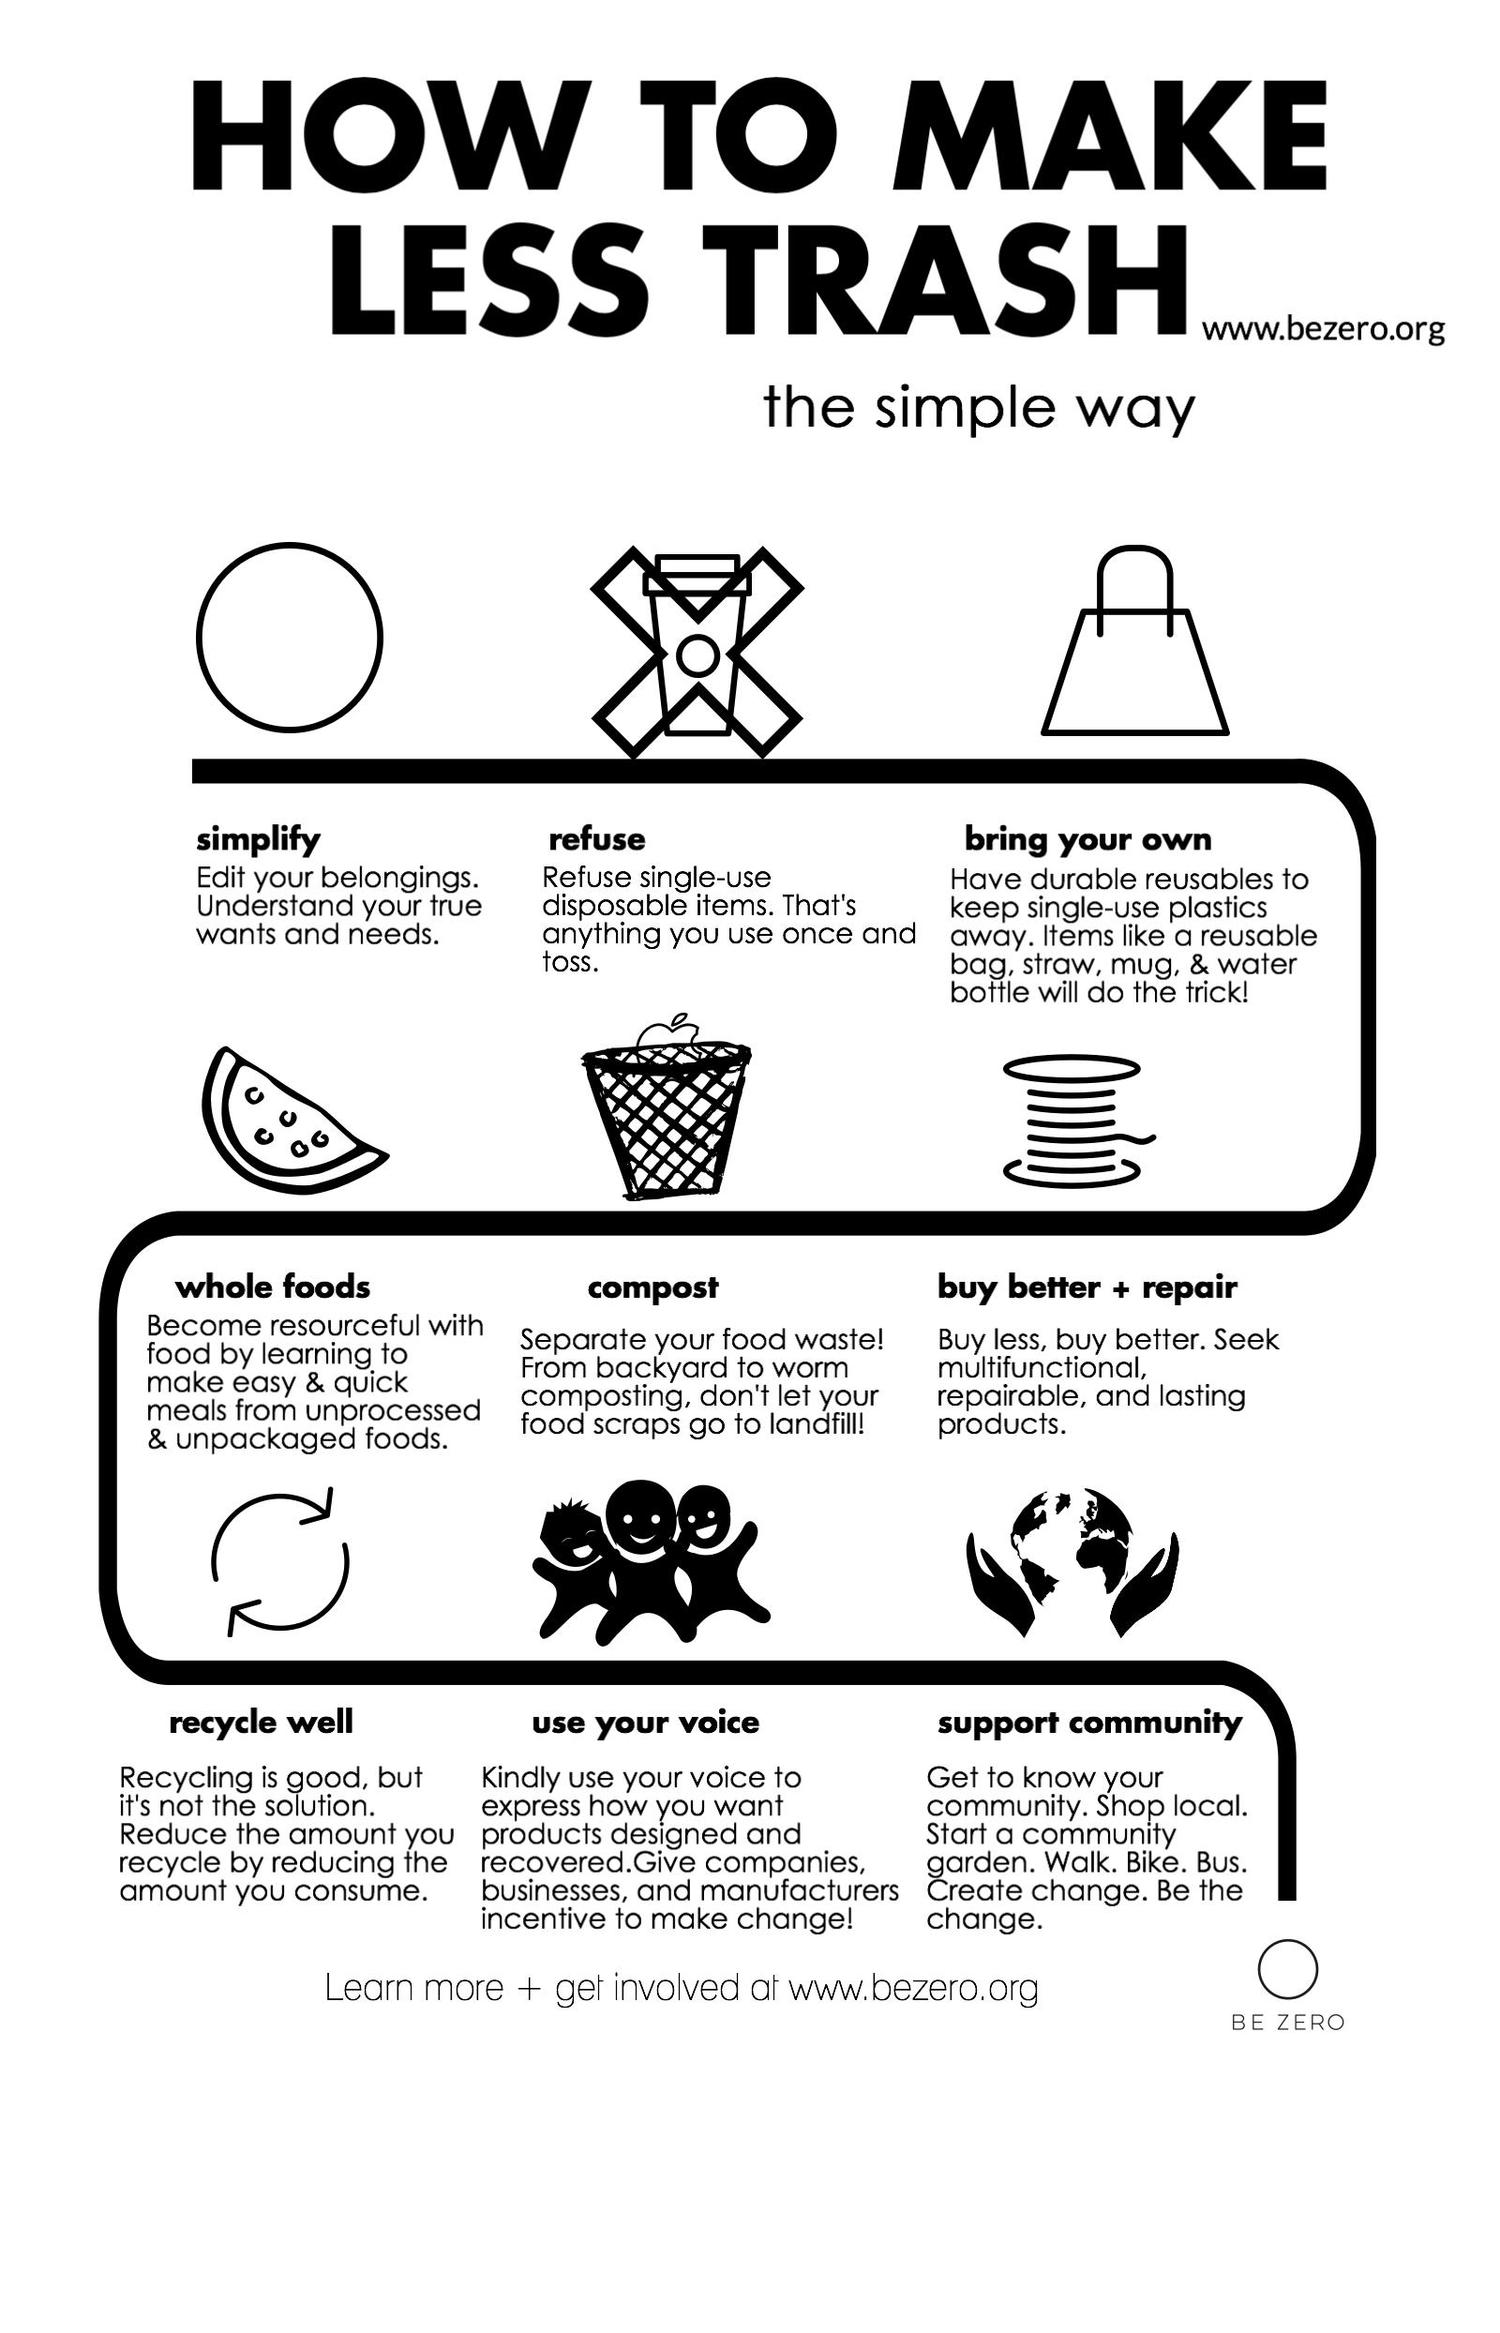 Make less trash [Guide] | ecogreenlove